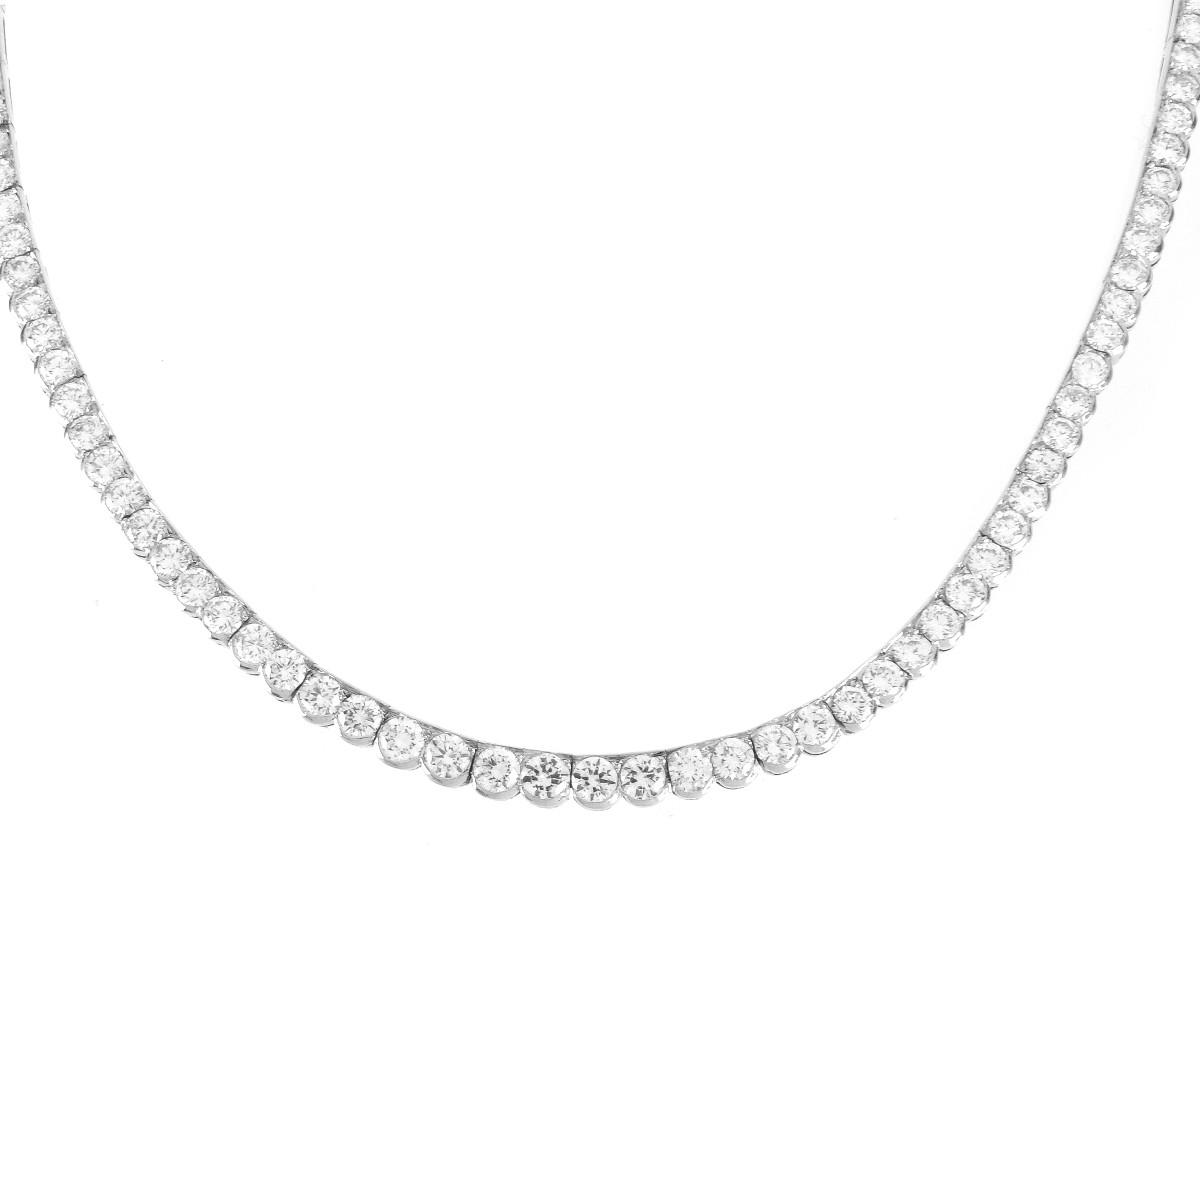 Vintage Van Cleef & Arpels Diamond Necklace